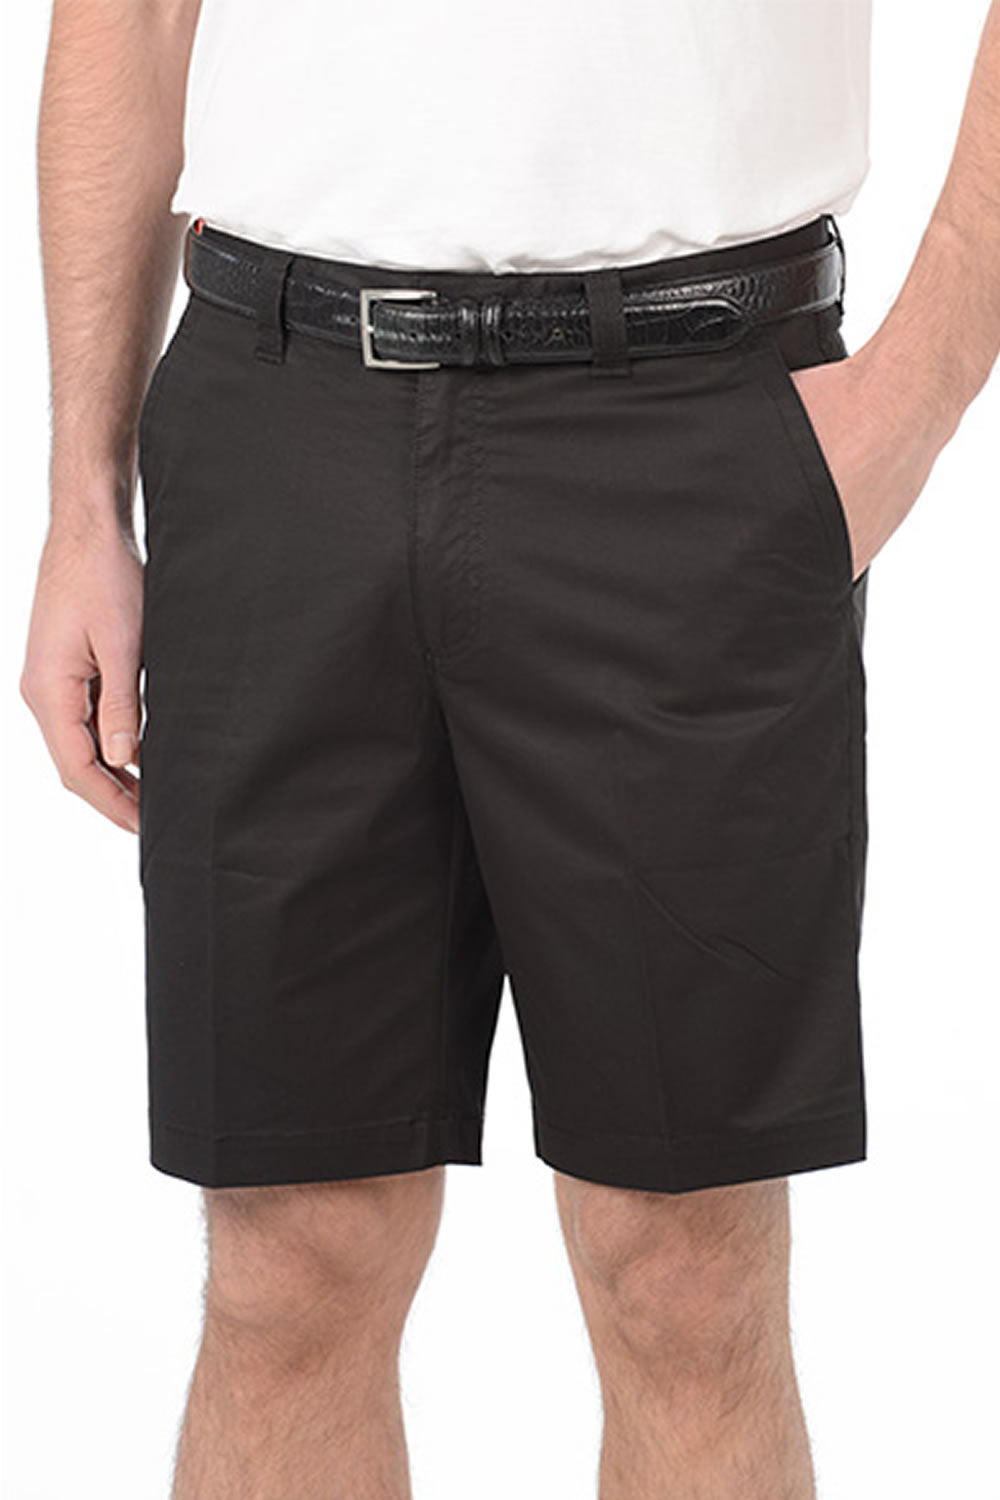 Bob Spears Walk Shorts